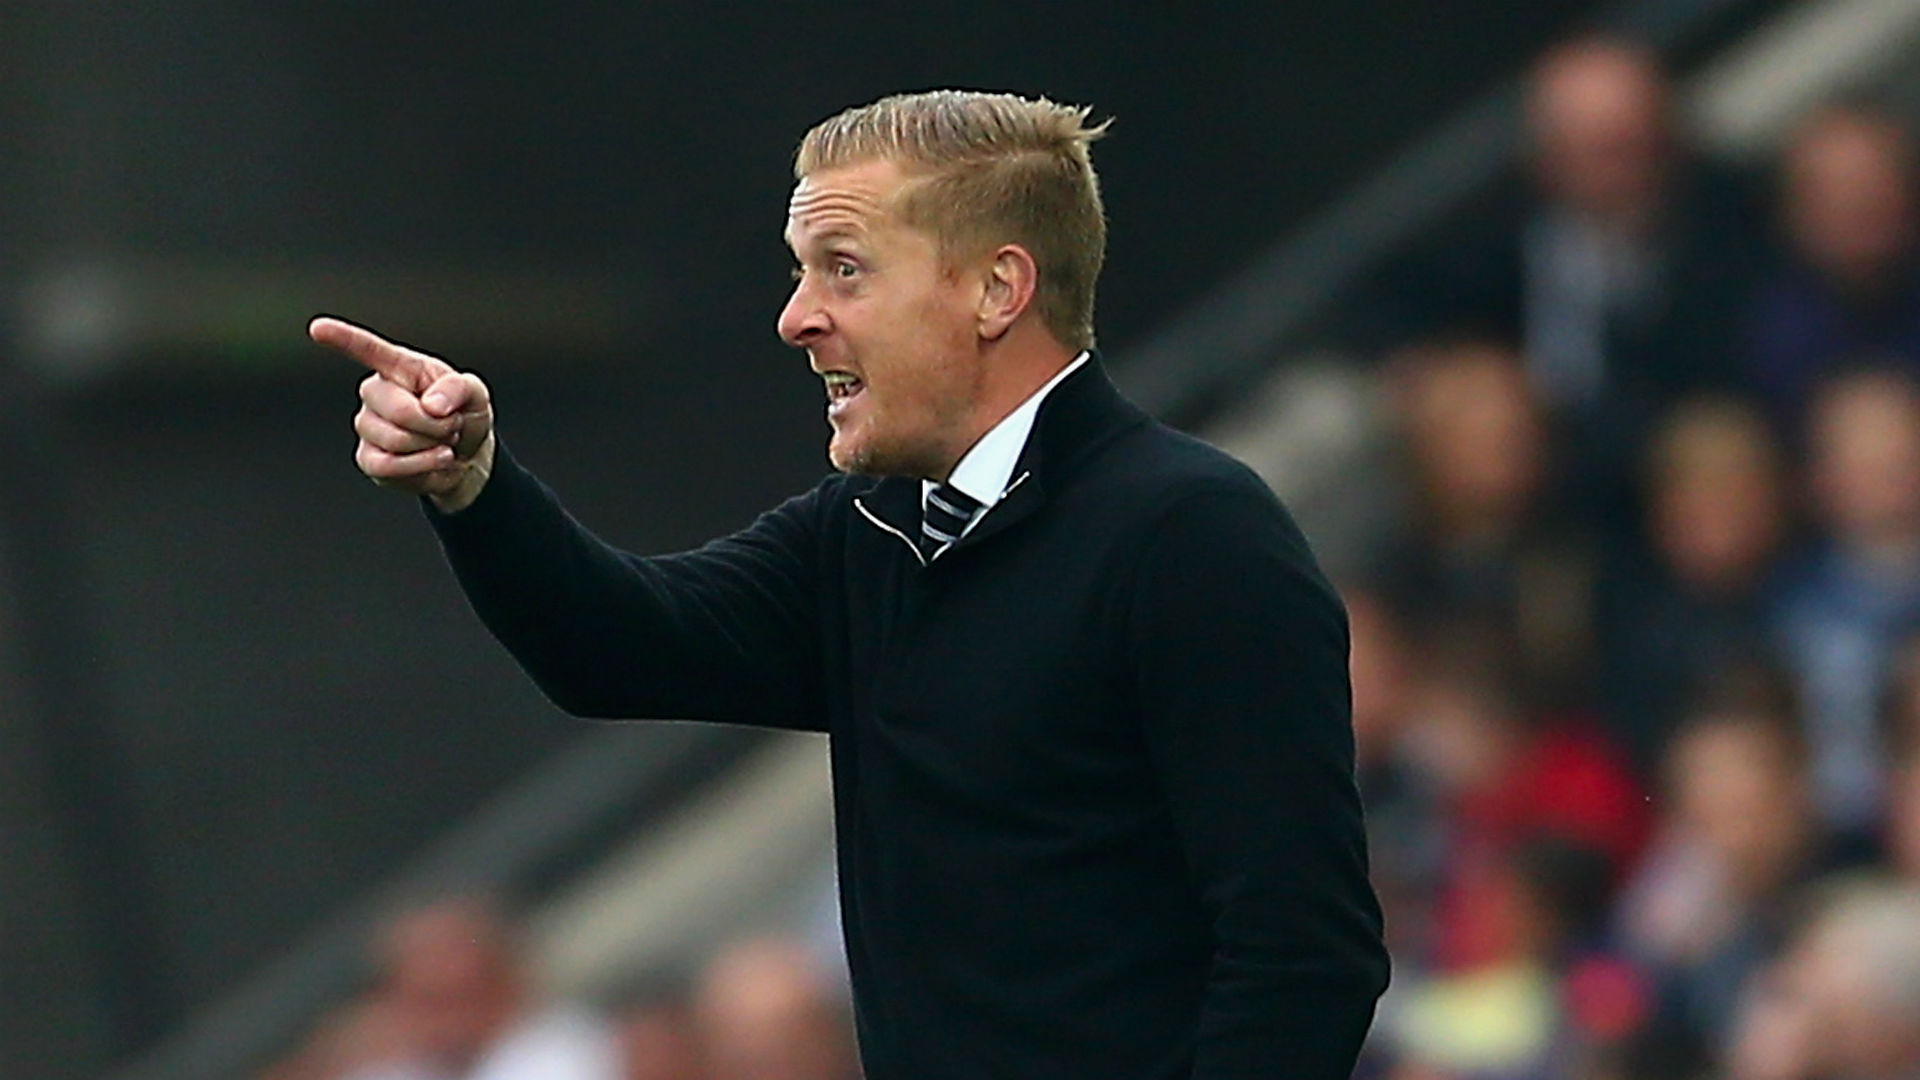 Garry Monk unveiled at Middlesbrough and reveals why he wanted the job